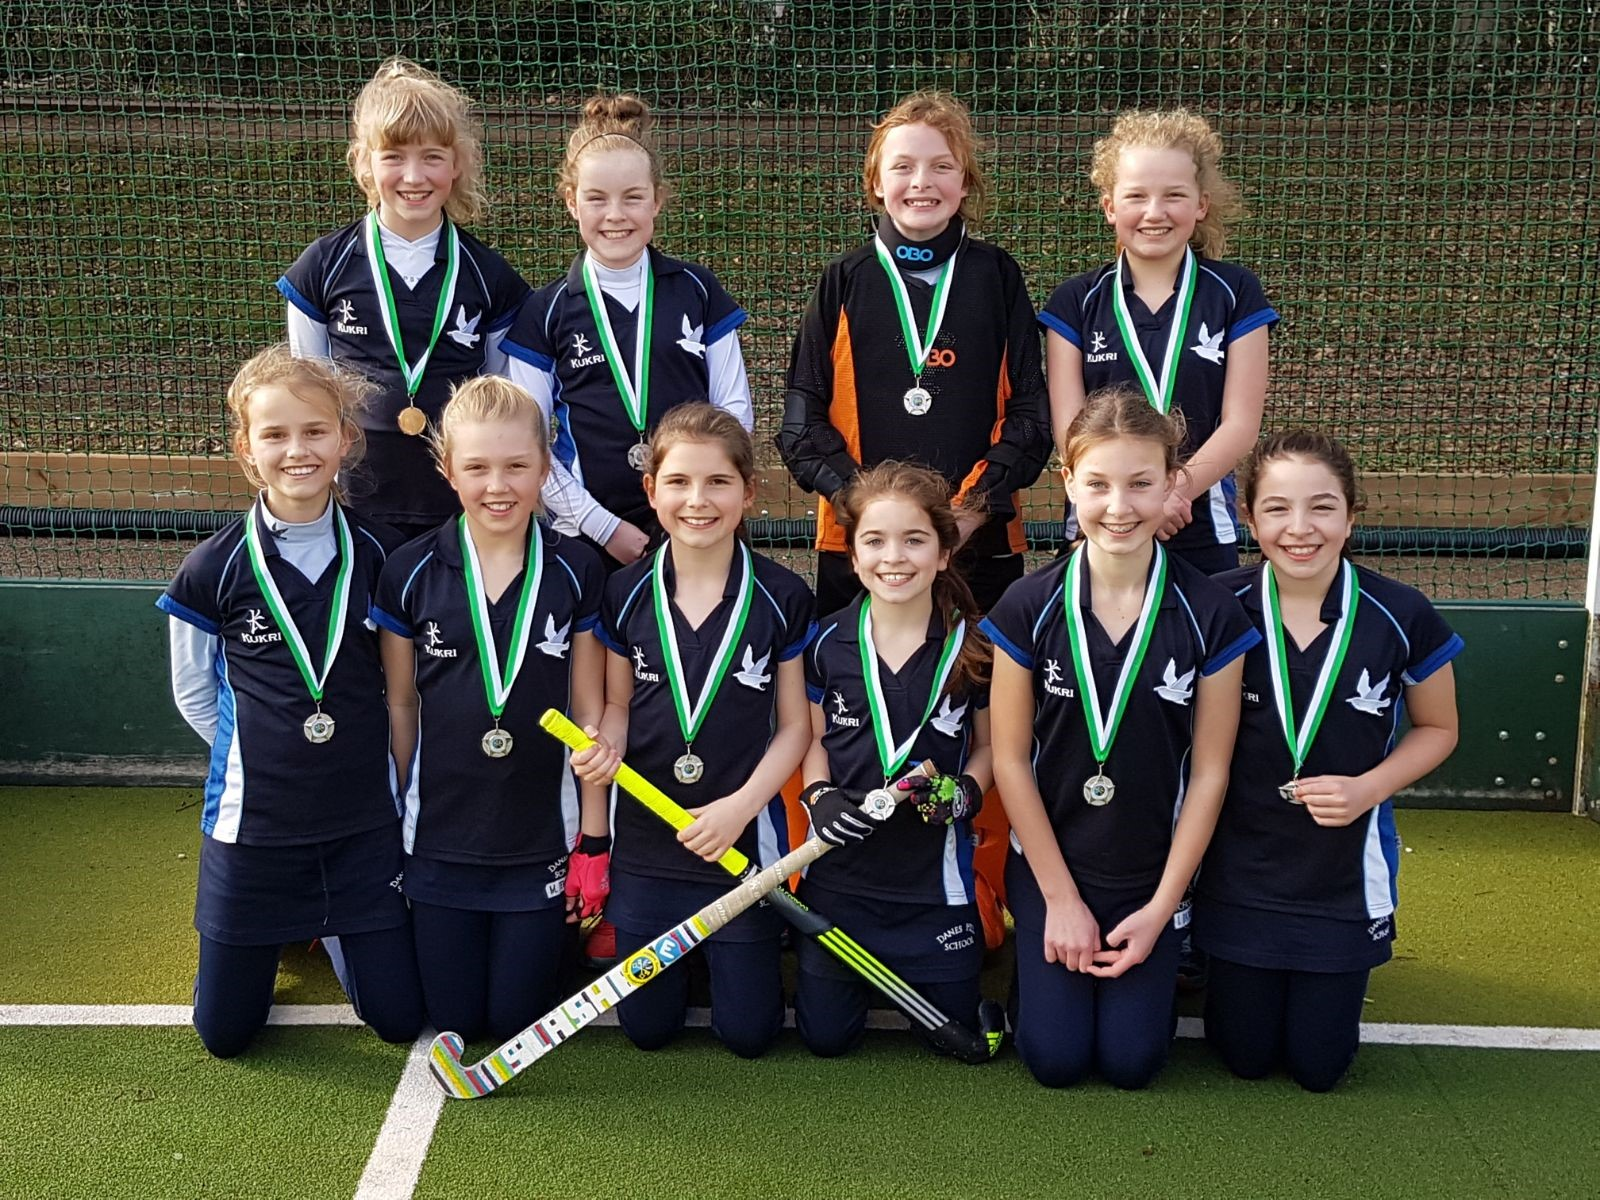 U11 South Finals Success